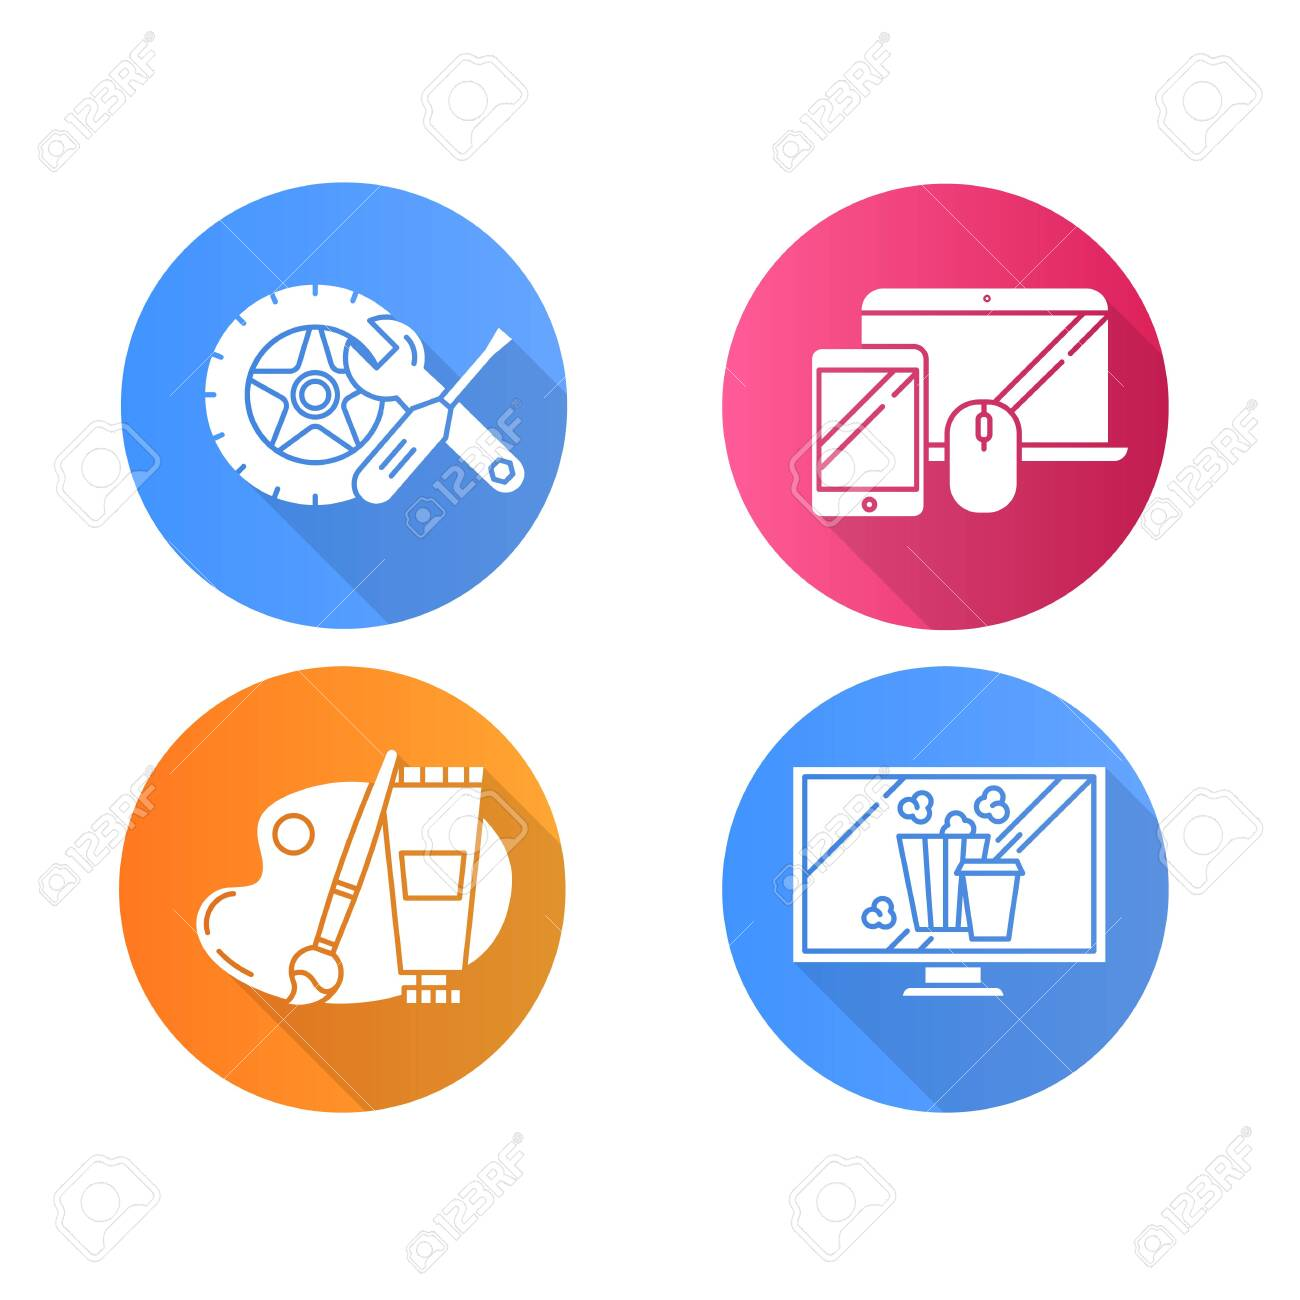 E commerce departments flat design long shadow glyph icons set. Online shopping categories. Internet retail. Arts and crafts. Auto parts. Movies and television. Vector silhouette illustration - 134208731